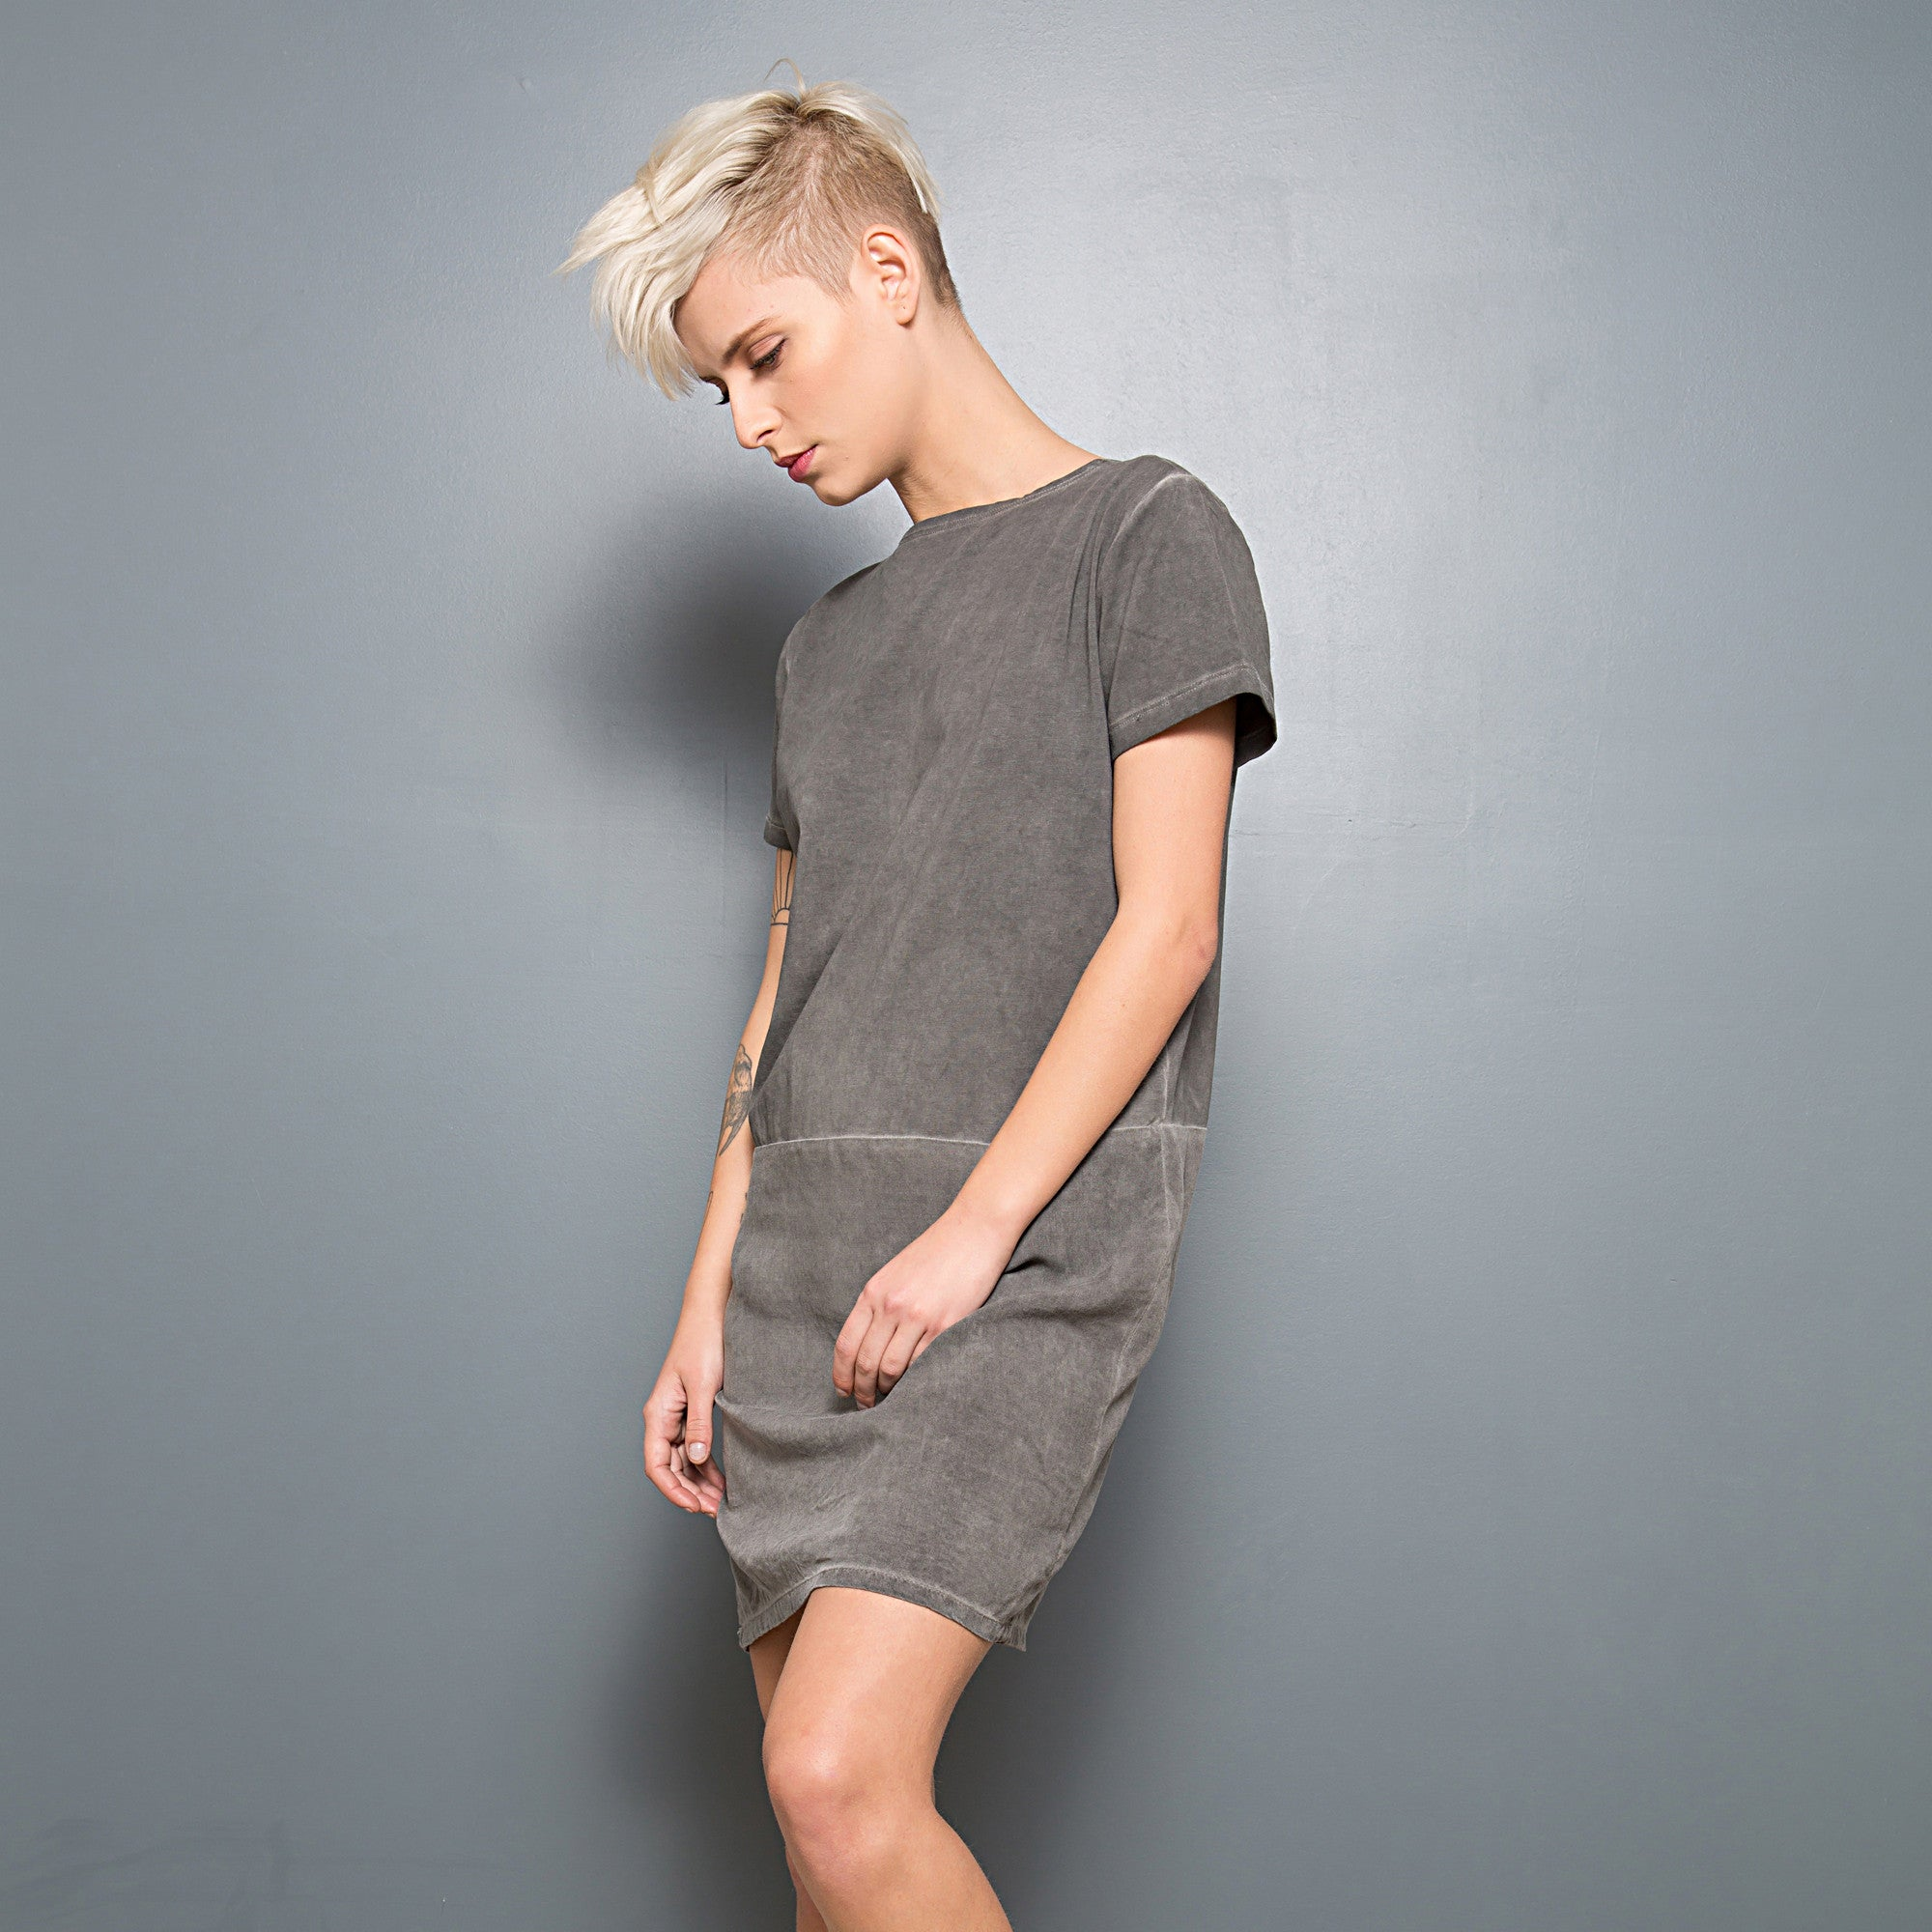 Half jersey half viscose summer T-shirt dress - DuendeFashion  - 5